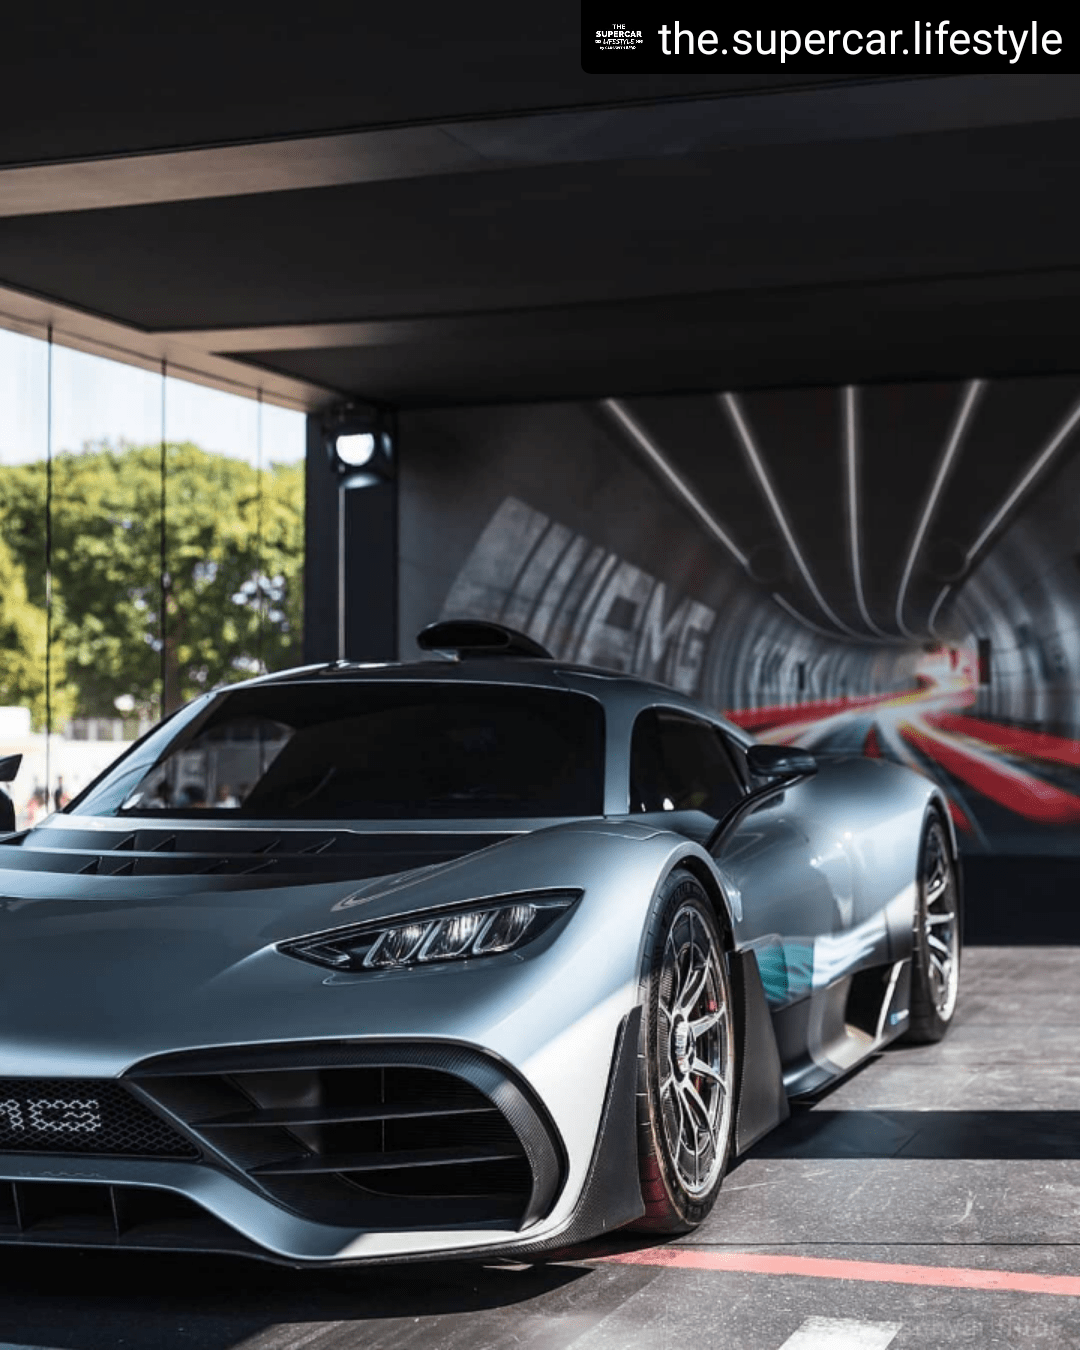 25 Inspirational Luxury Car Photo S You Could Have Tpoinspiration Luxury Car Photos Pimped Out Cars Luxury Cars